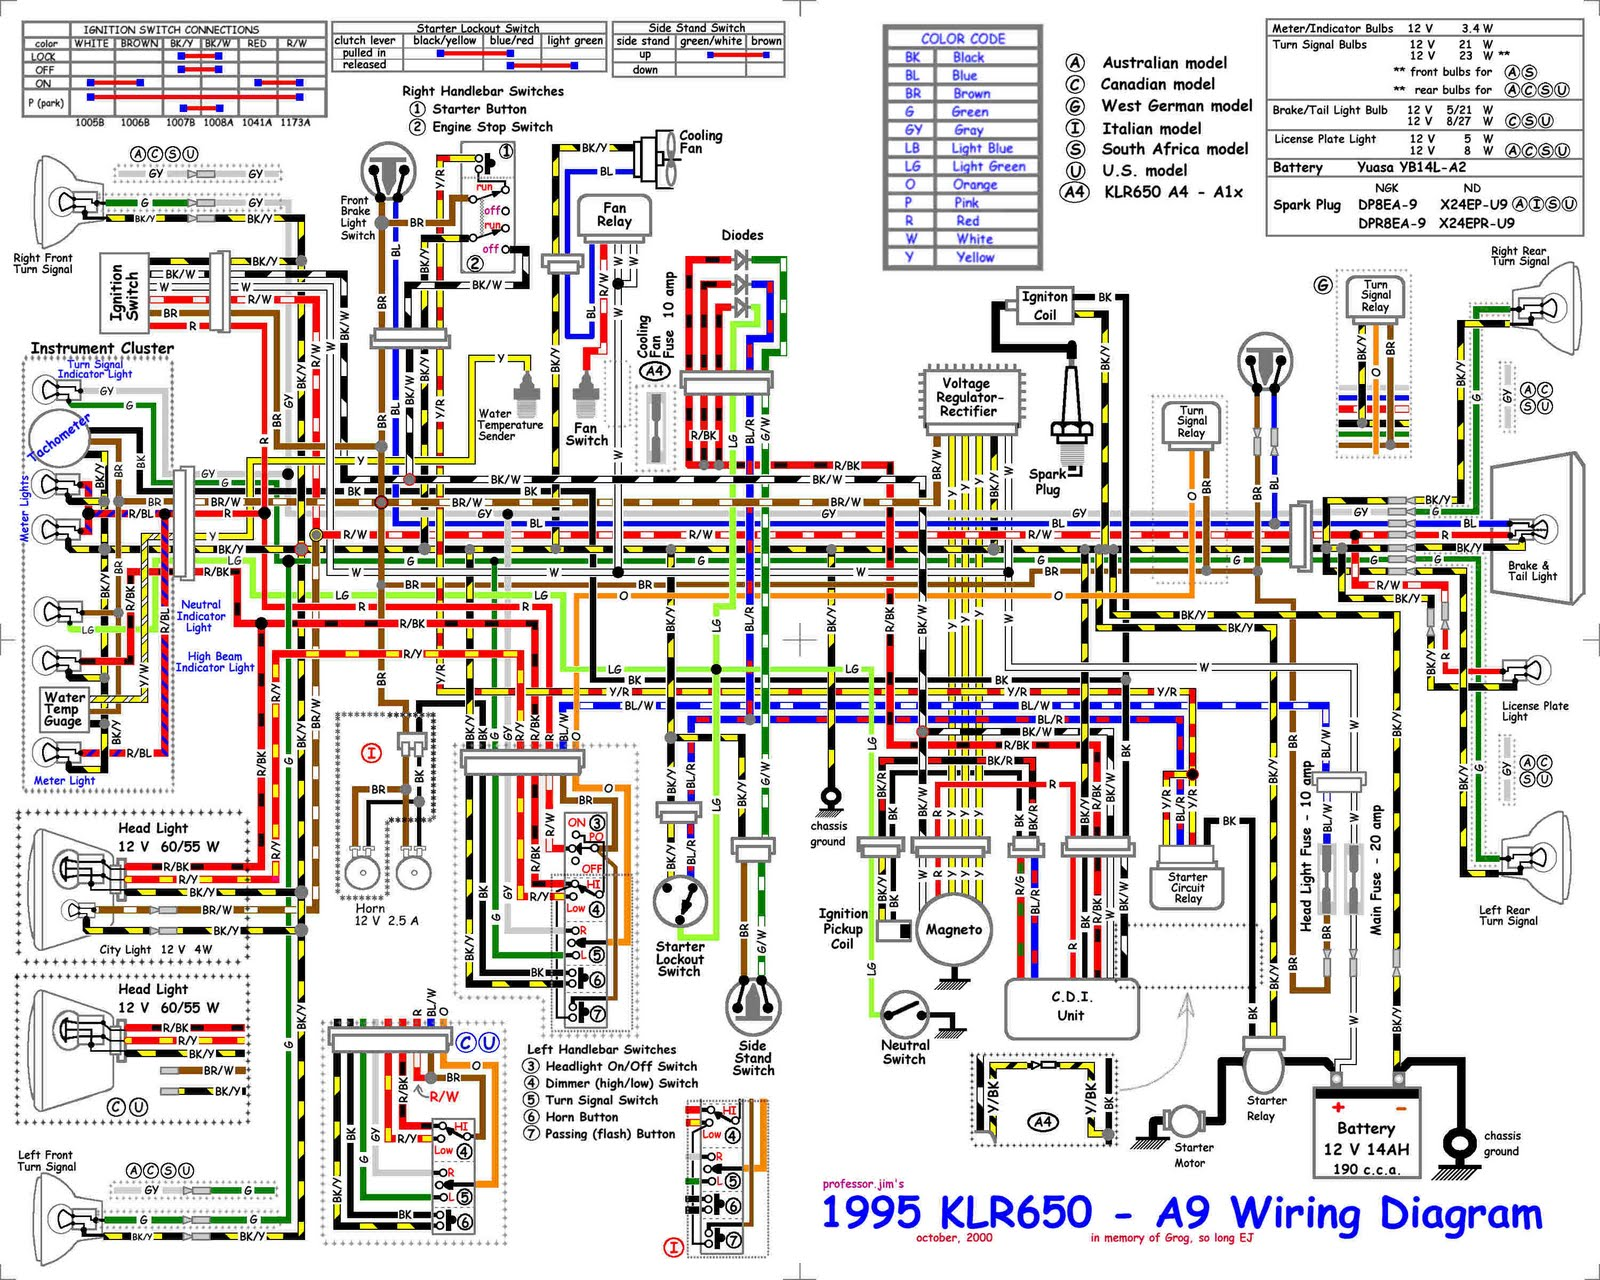 2003 monte carlo wiring diagram enthusiast wiring diagrams u2022 rh rasalibre co 2003 chevy monte carlo factory amp wiring diagram 2003 chevy monte carlo factory amp wiring diagram